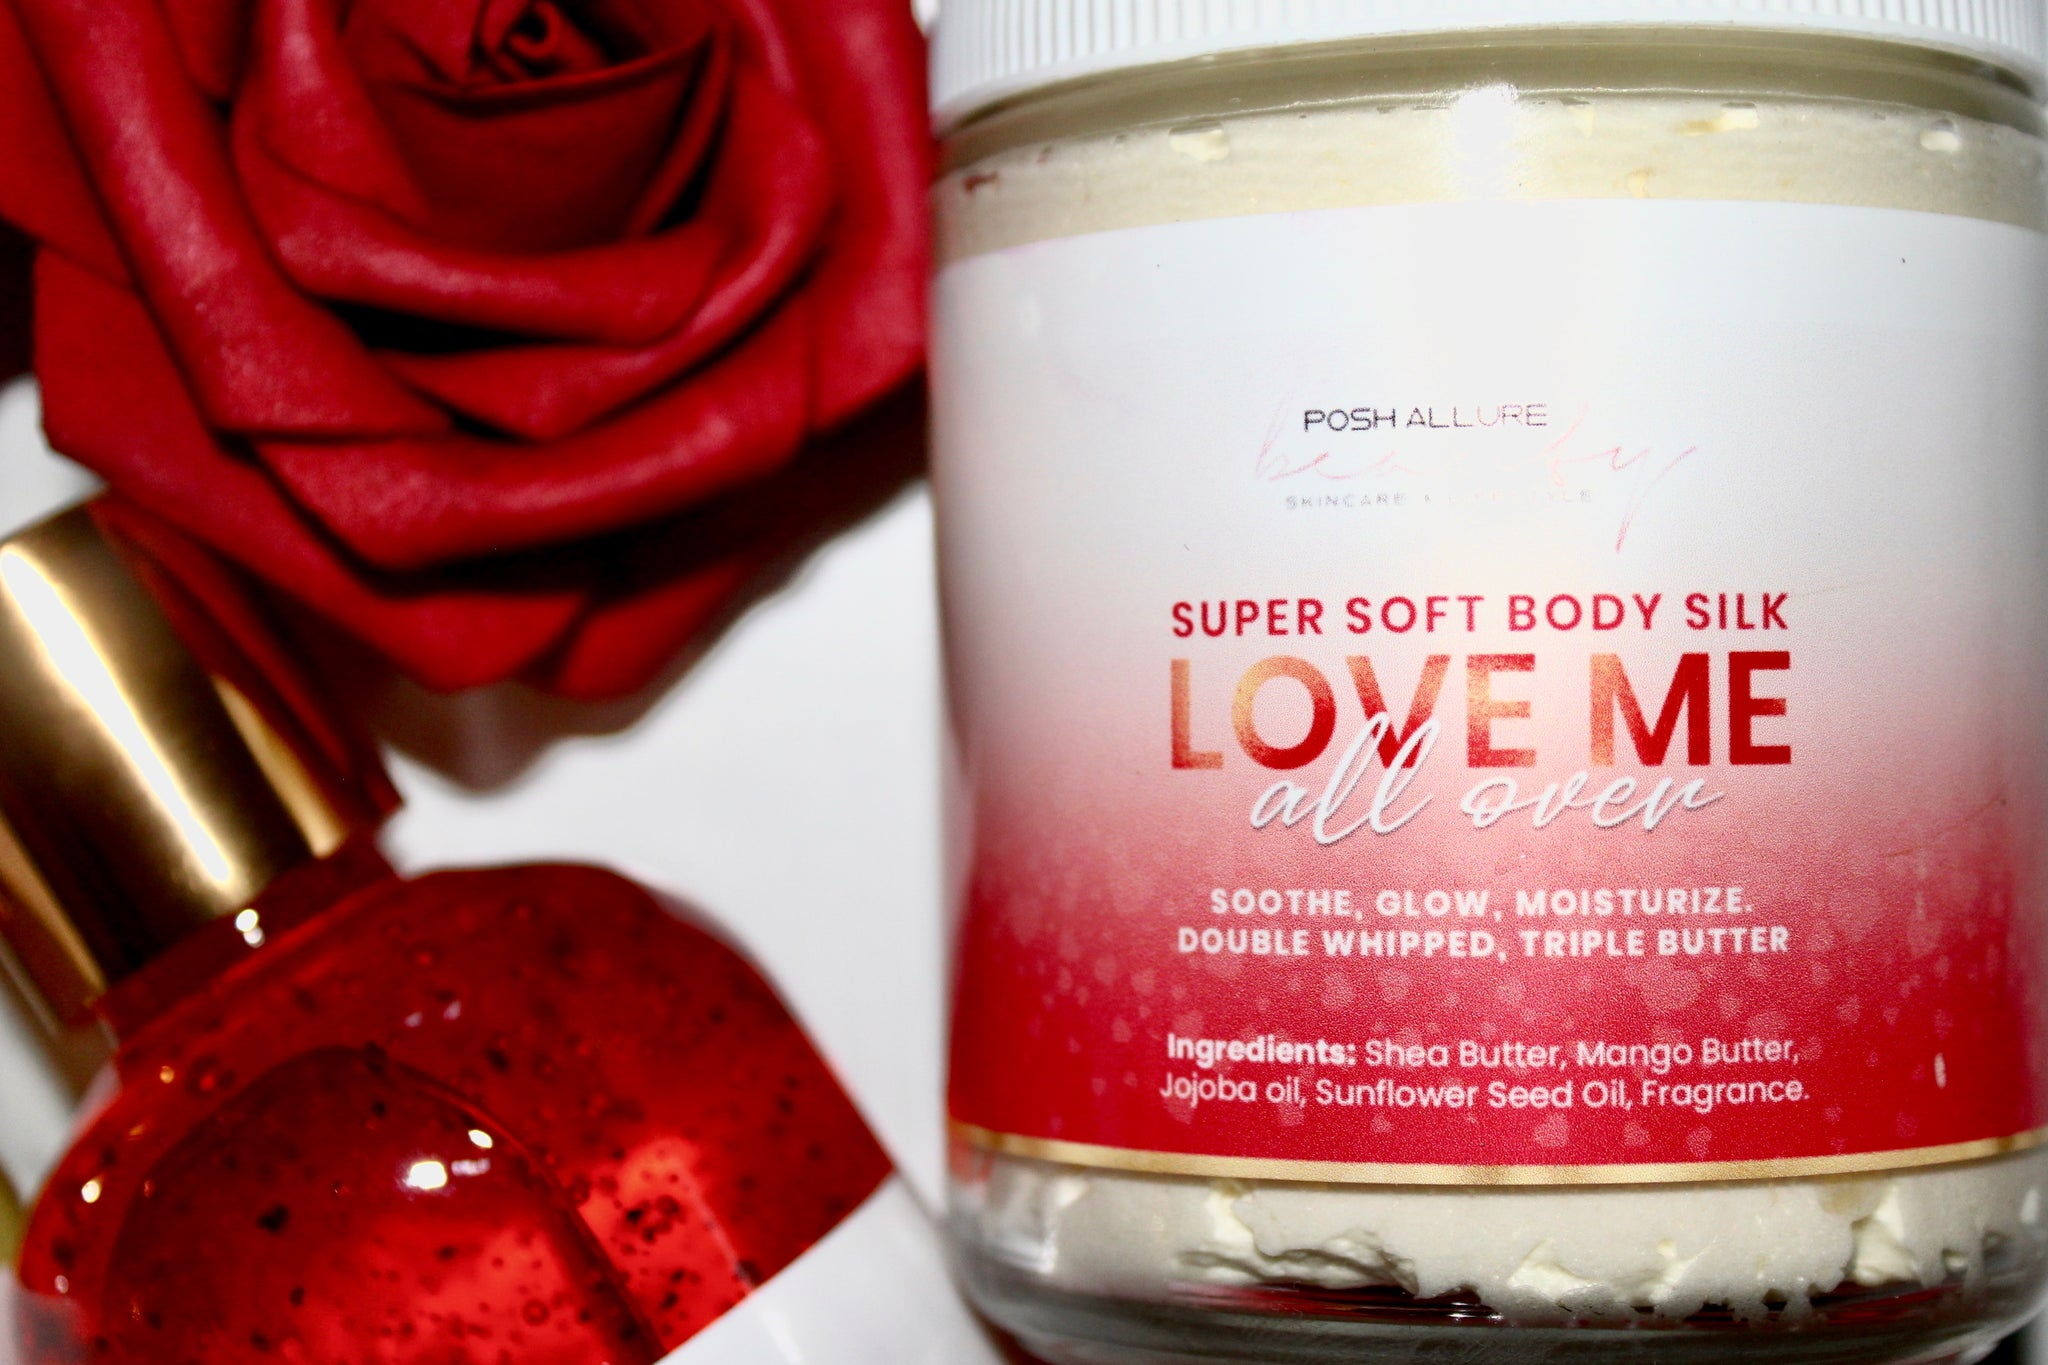 Super Soft Body Silk VDAY LE - Posh|Allure Beauty